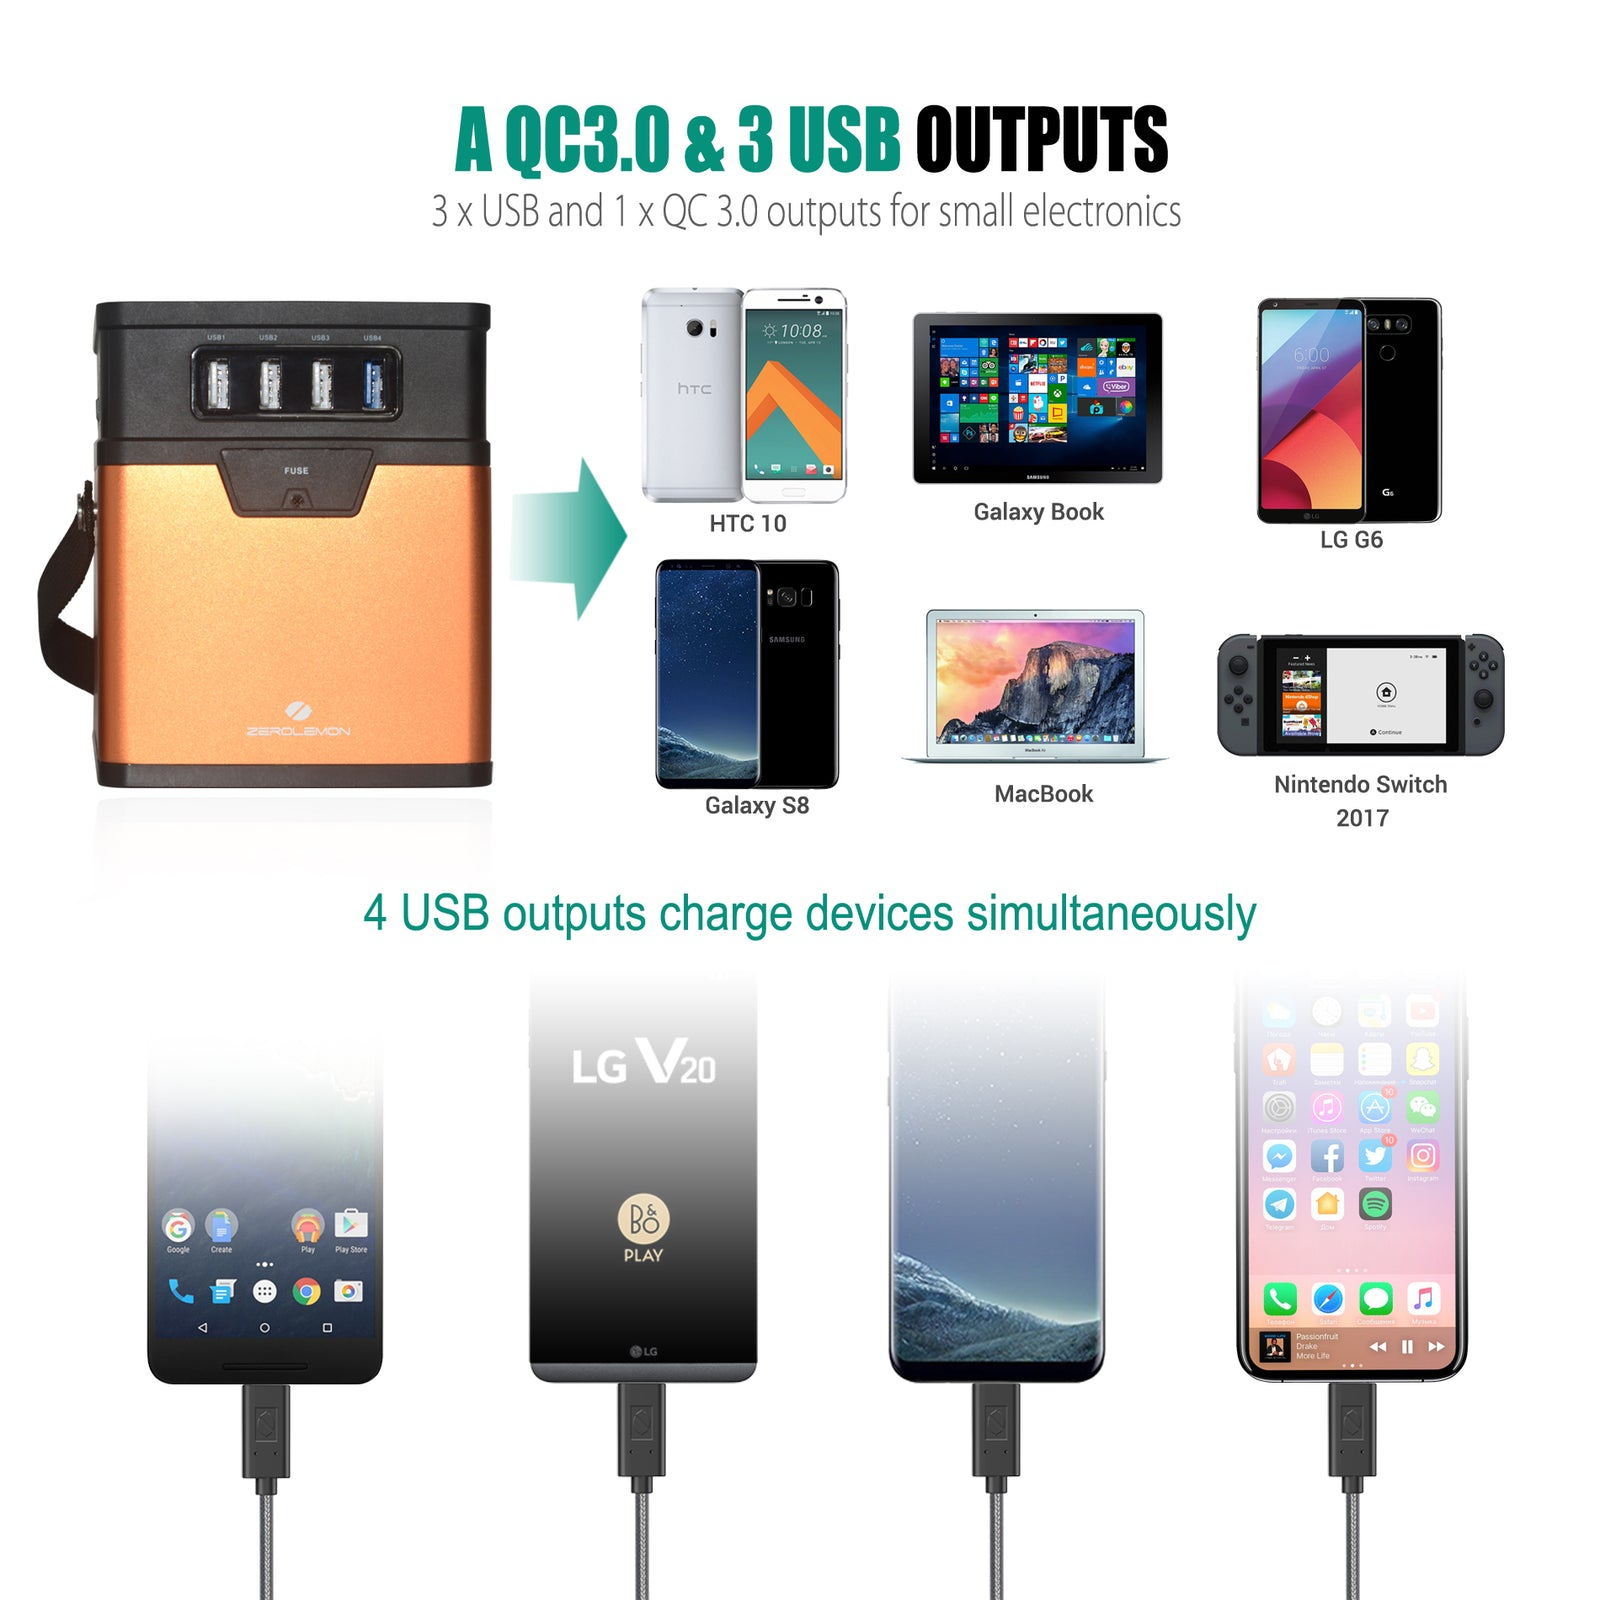 PowerCube 182Wh/50000mAh USB Quickcharge 3.0 Portable Power Station [Shipping to US Only]